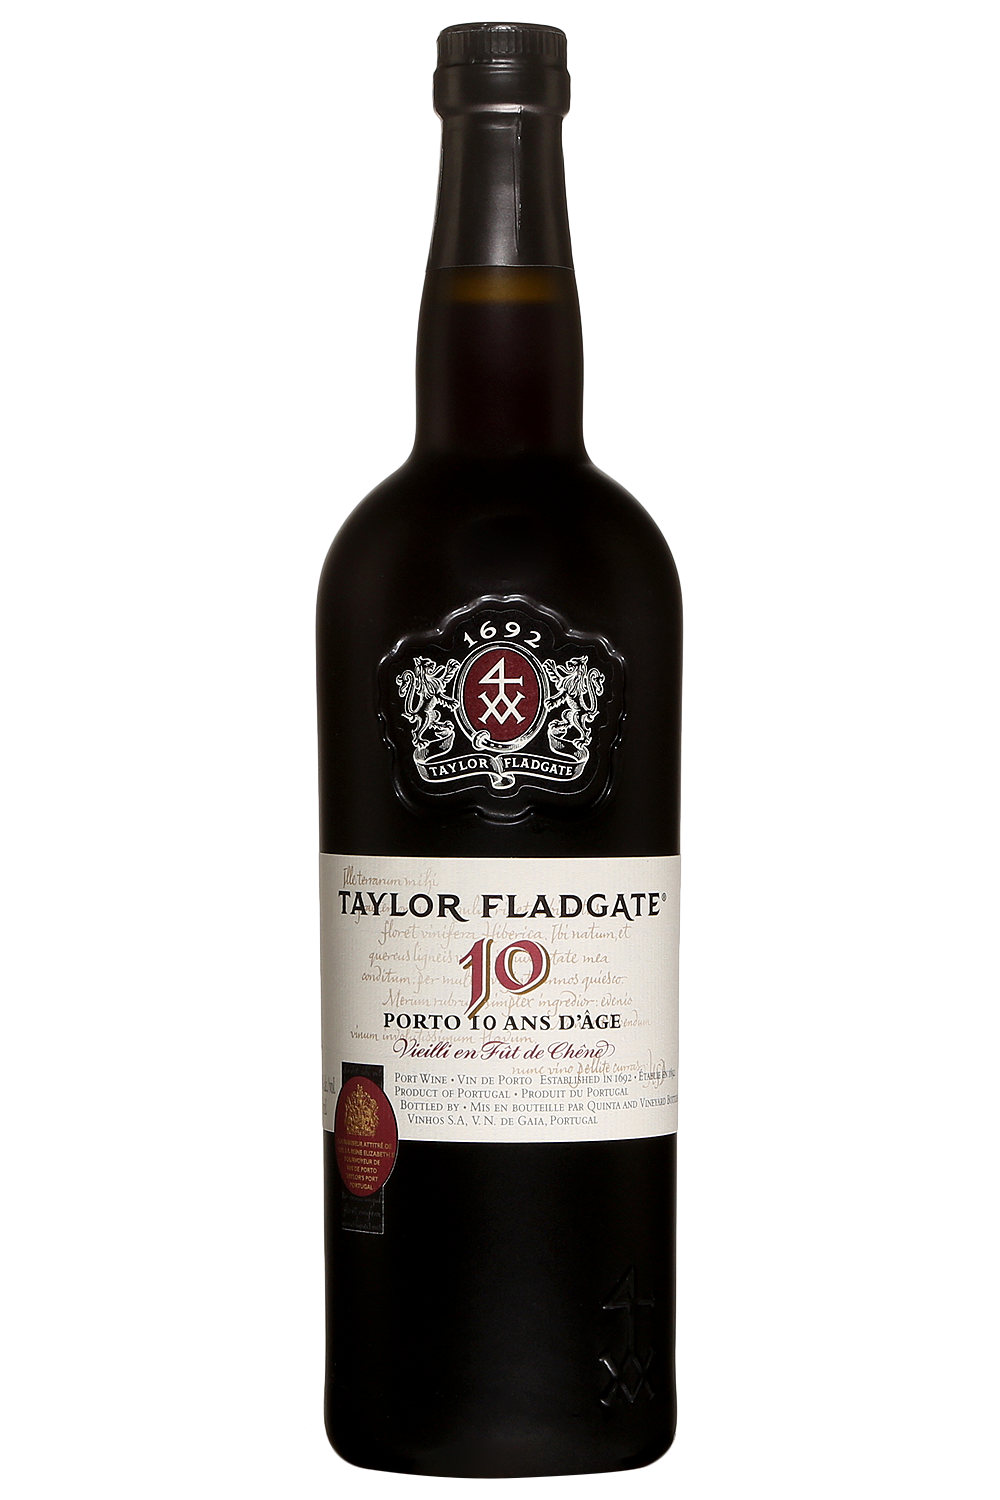 Taylor Fladgate Tawny 10 Years Old